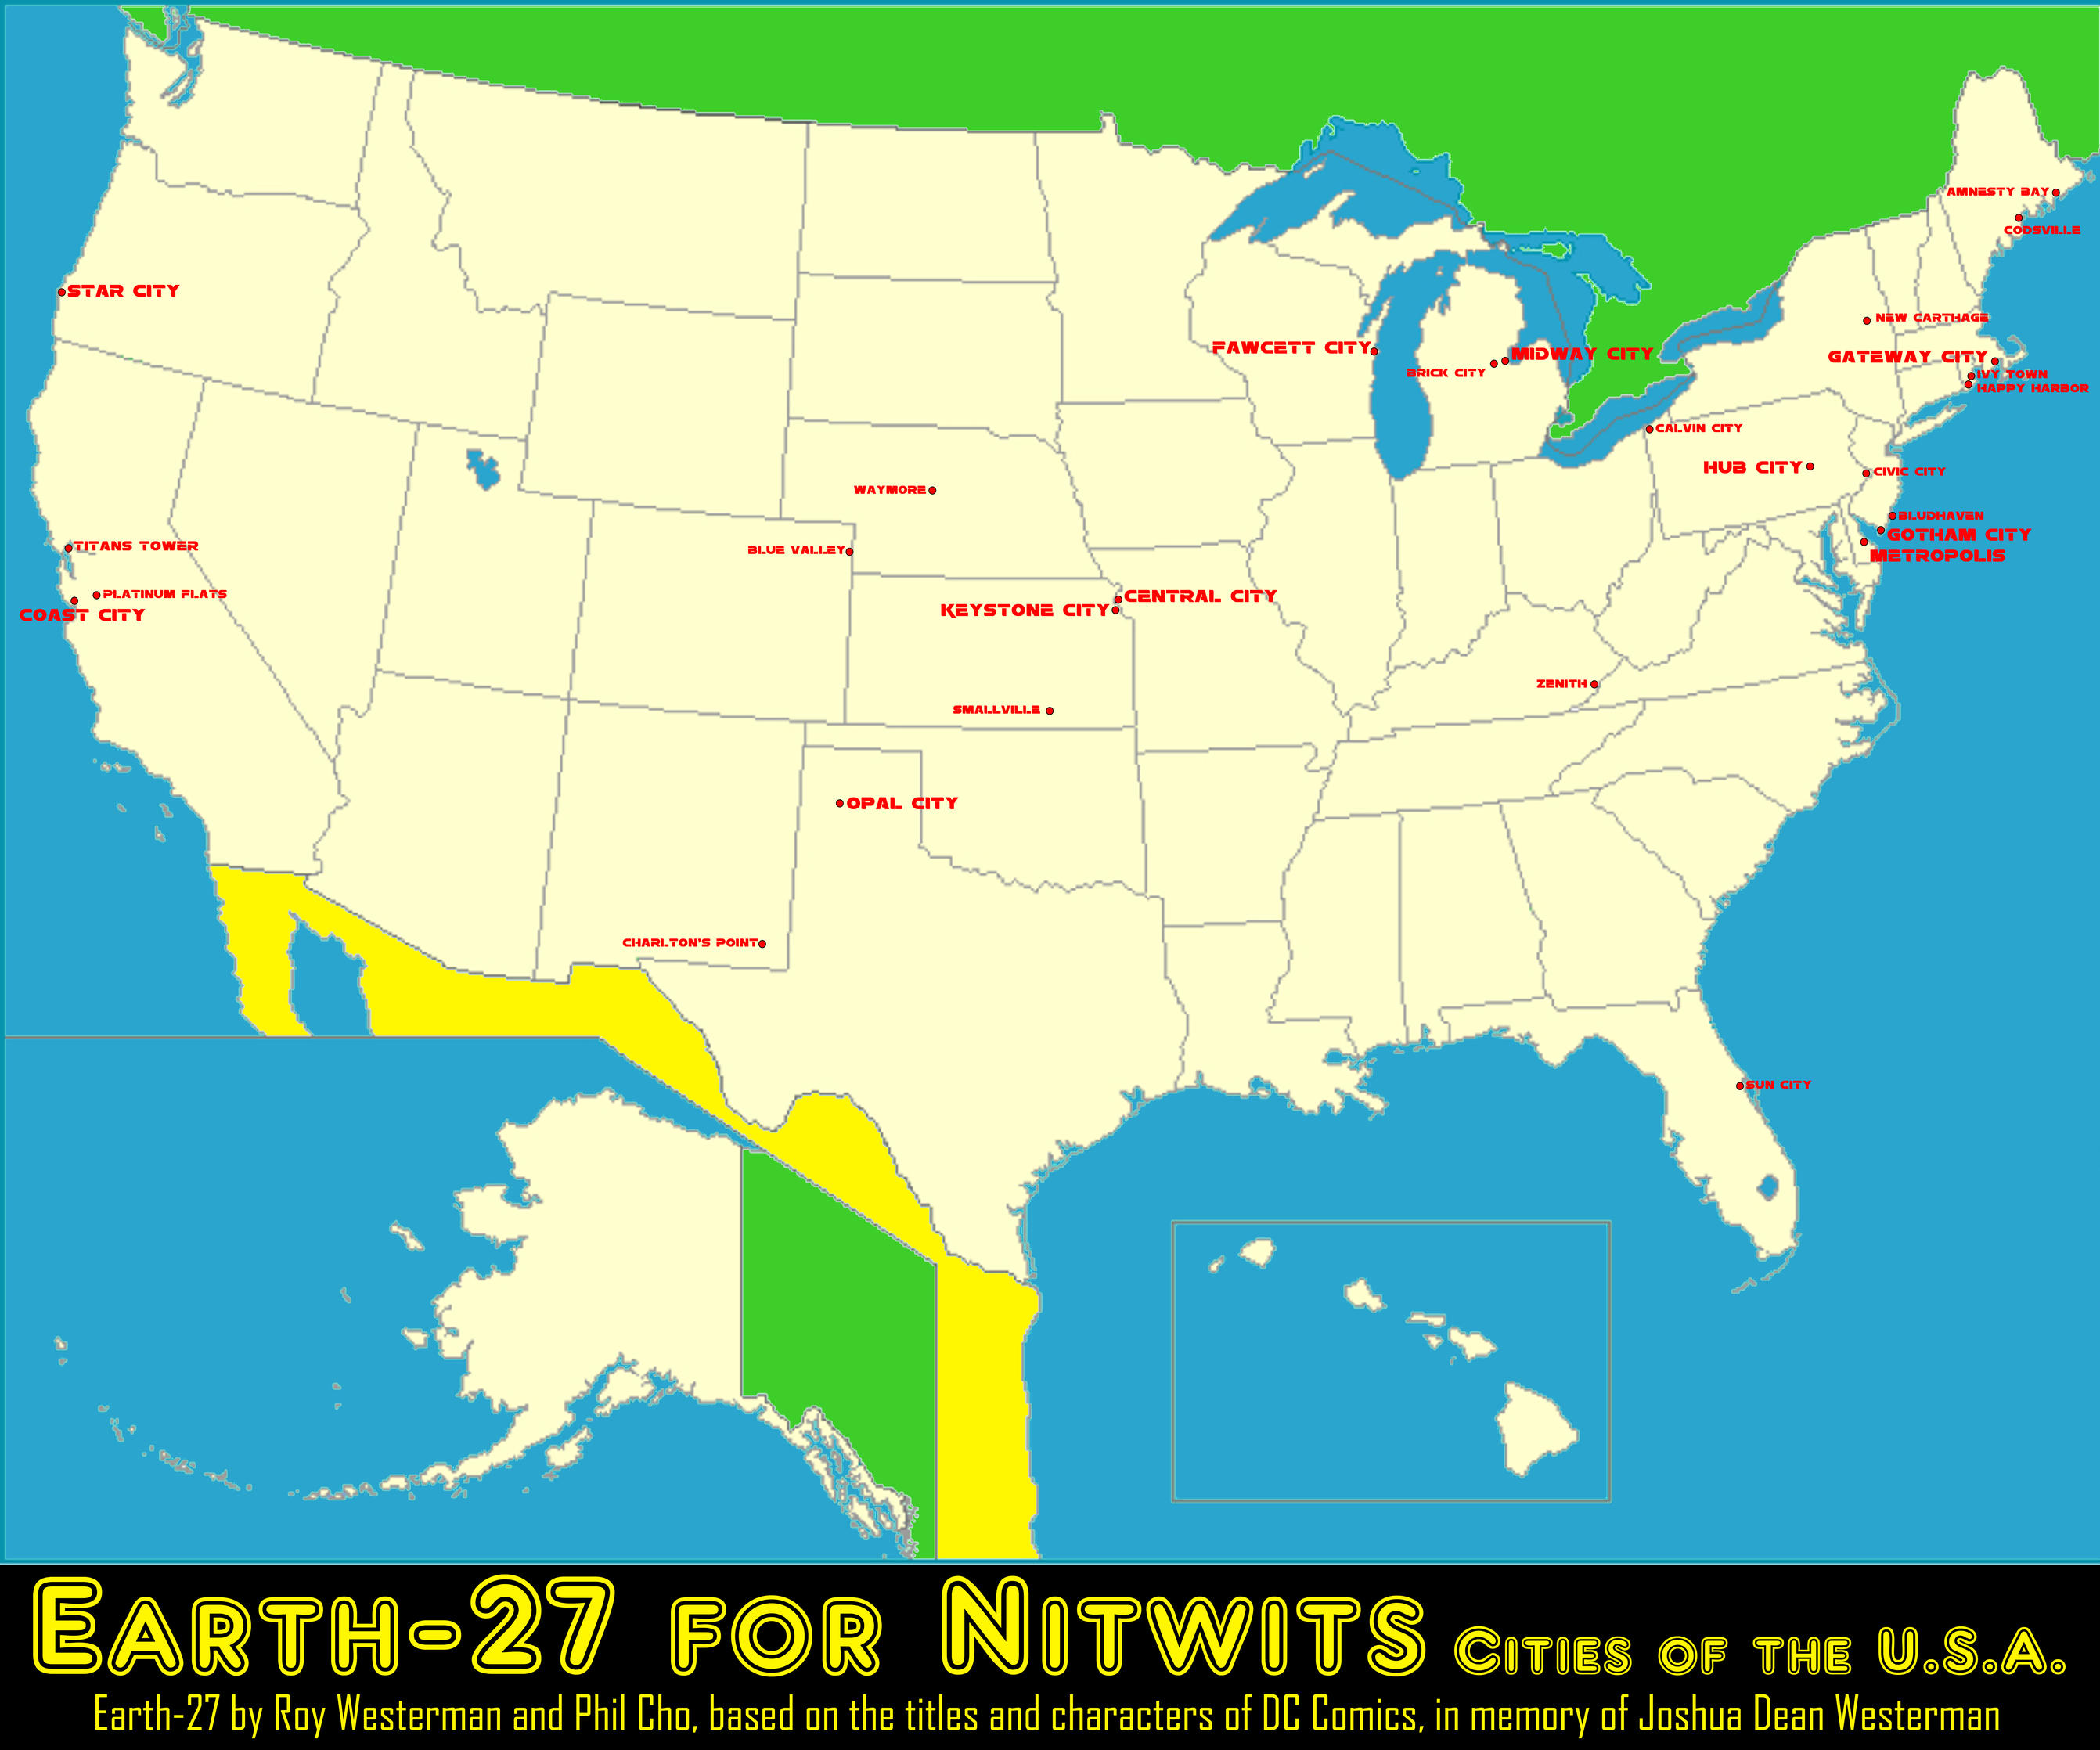 Earth-27 for Nitwits - Cities of the USA [WiP] by Roysovitch